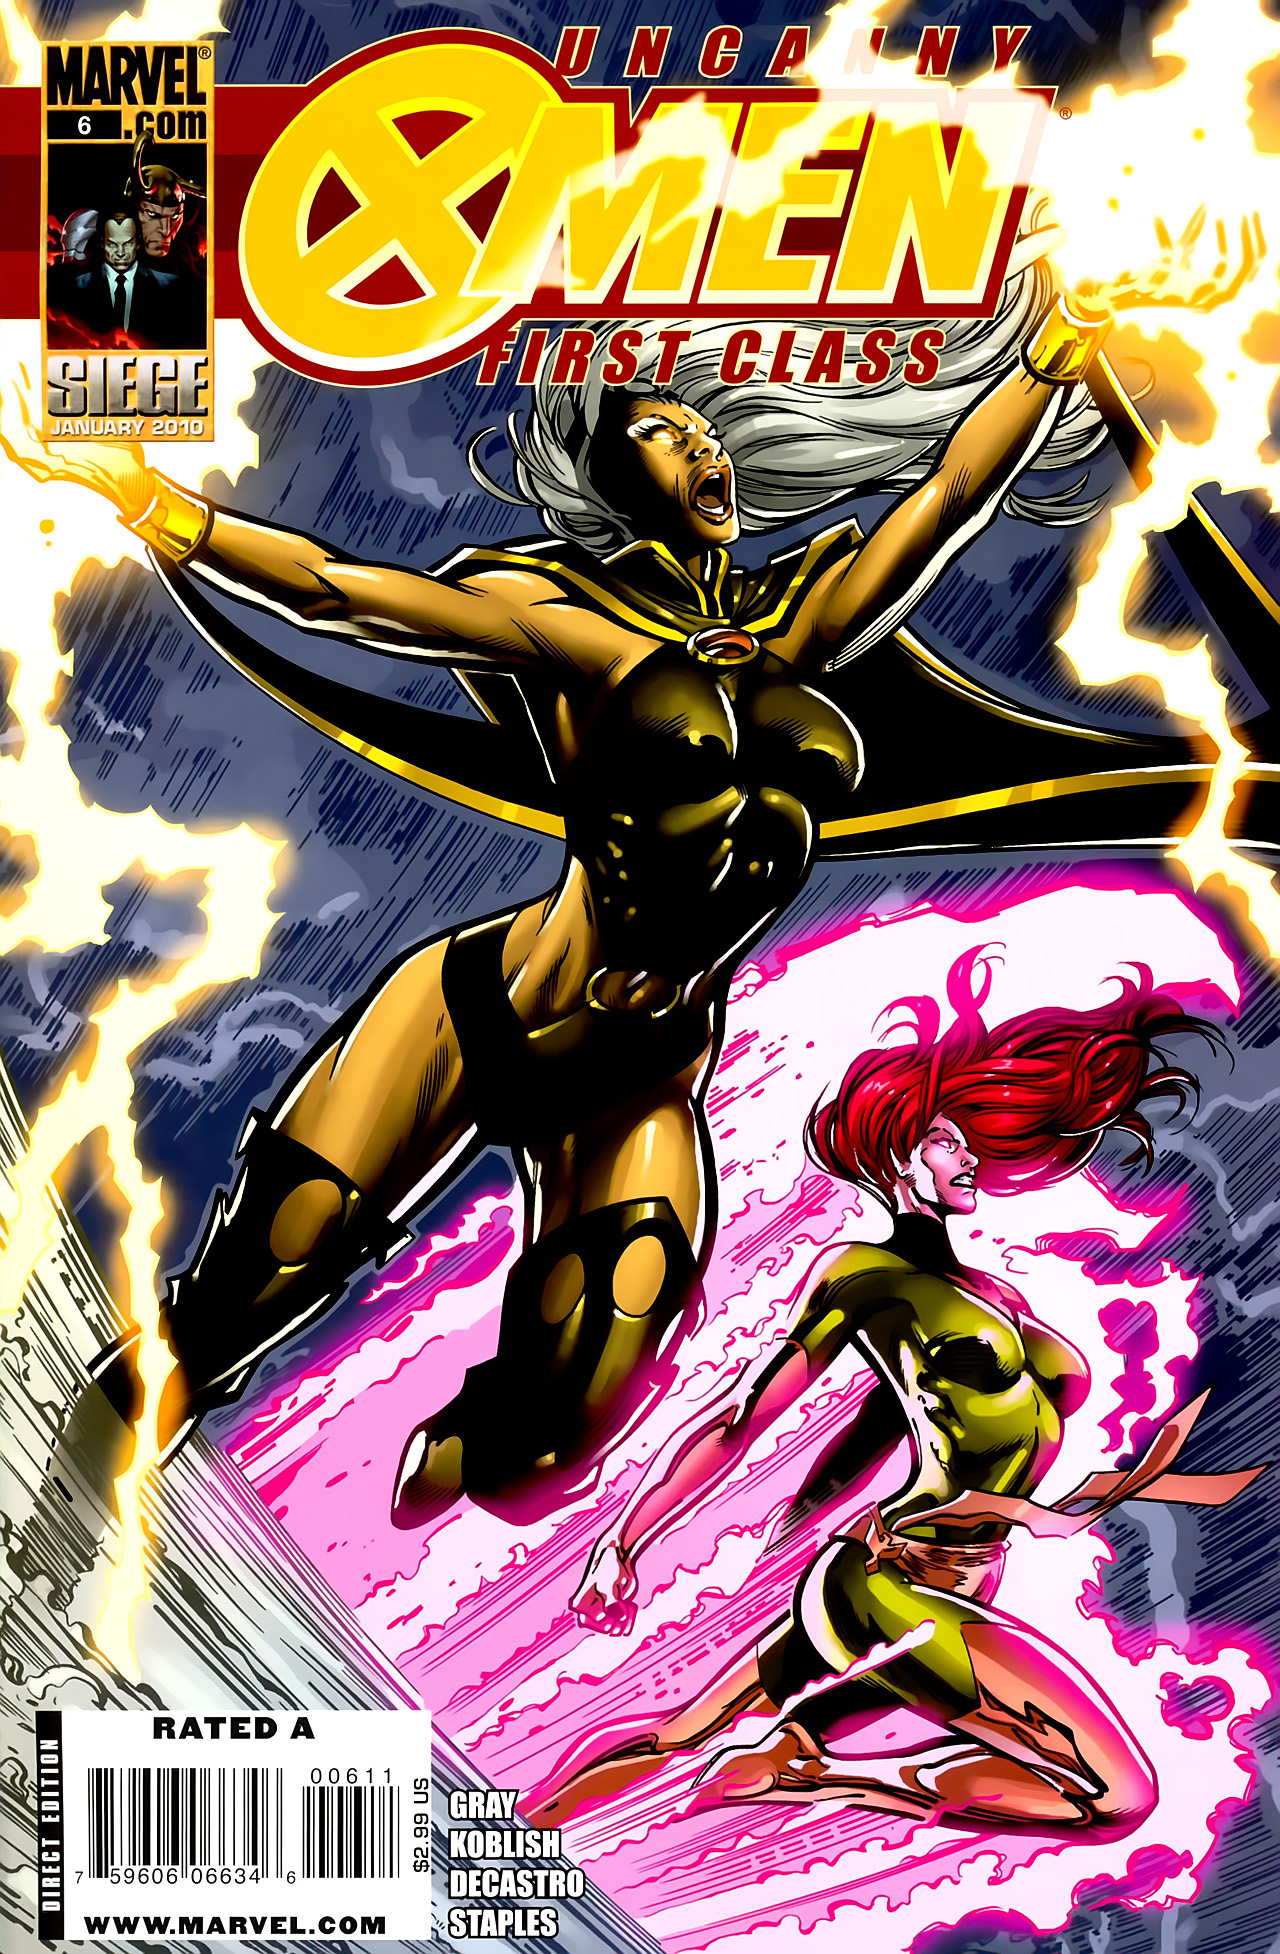 Read online Uncanny X-Men: First Class comic -  Issue #6 - 1